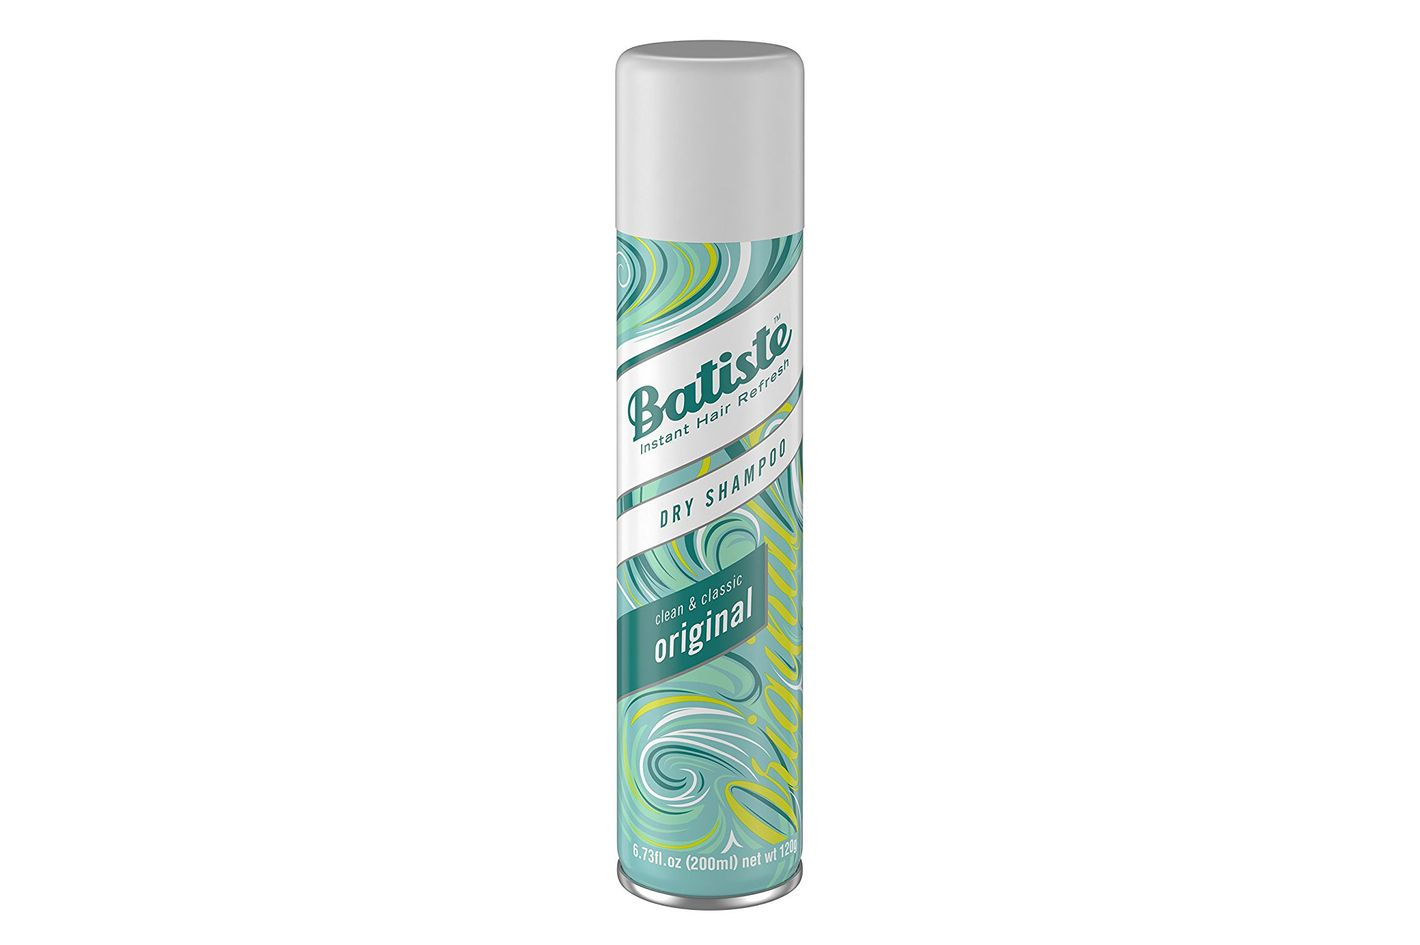 Batiste Dry Shampoo, Pack of 3